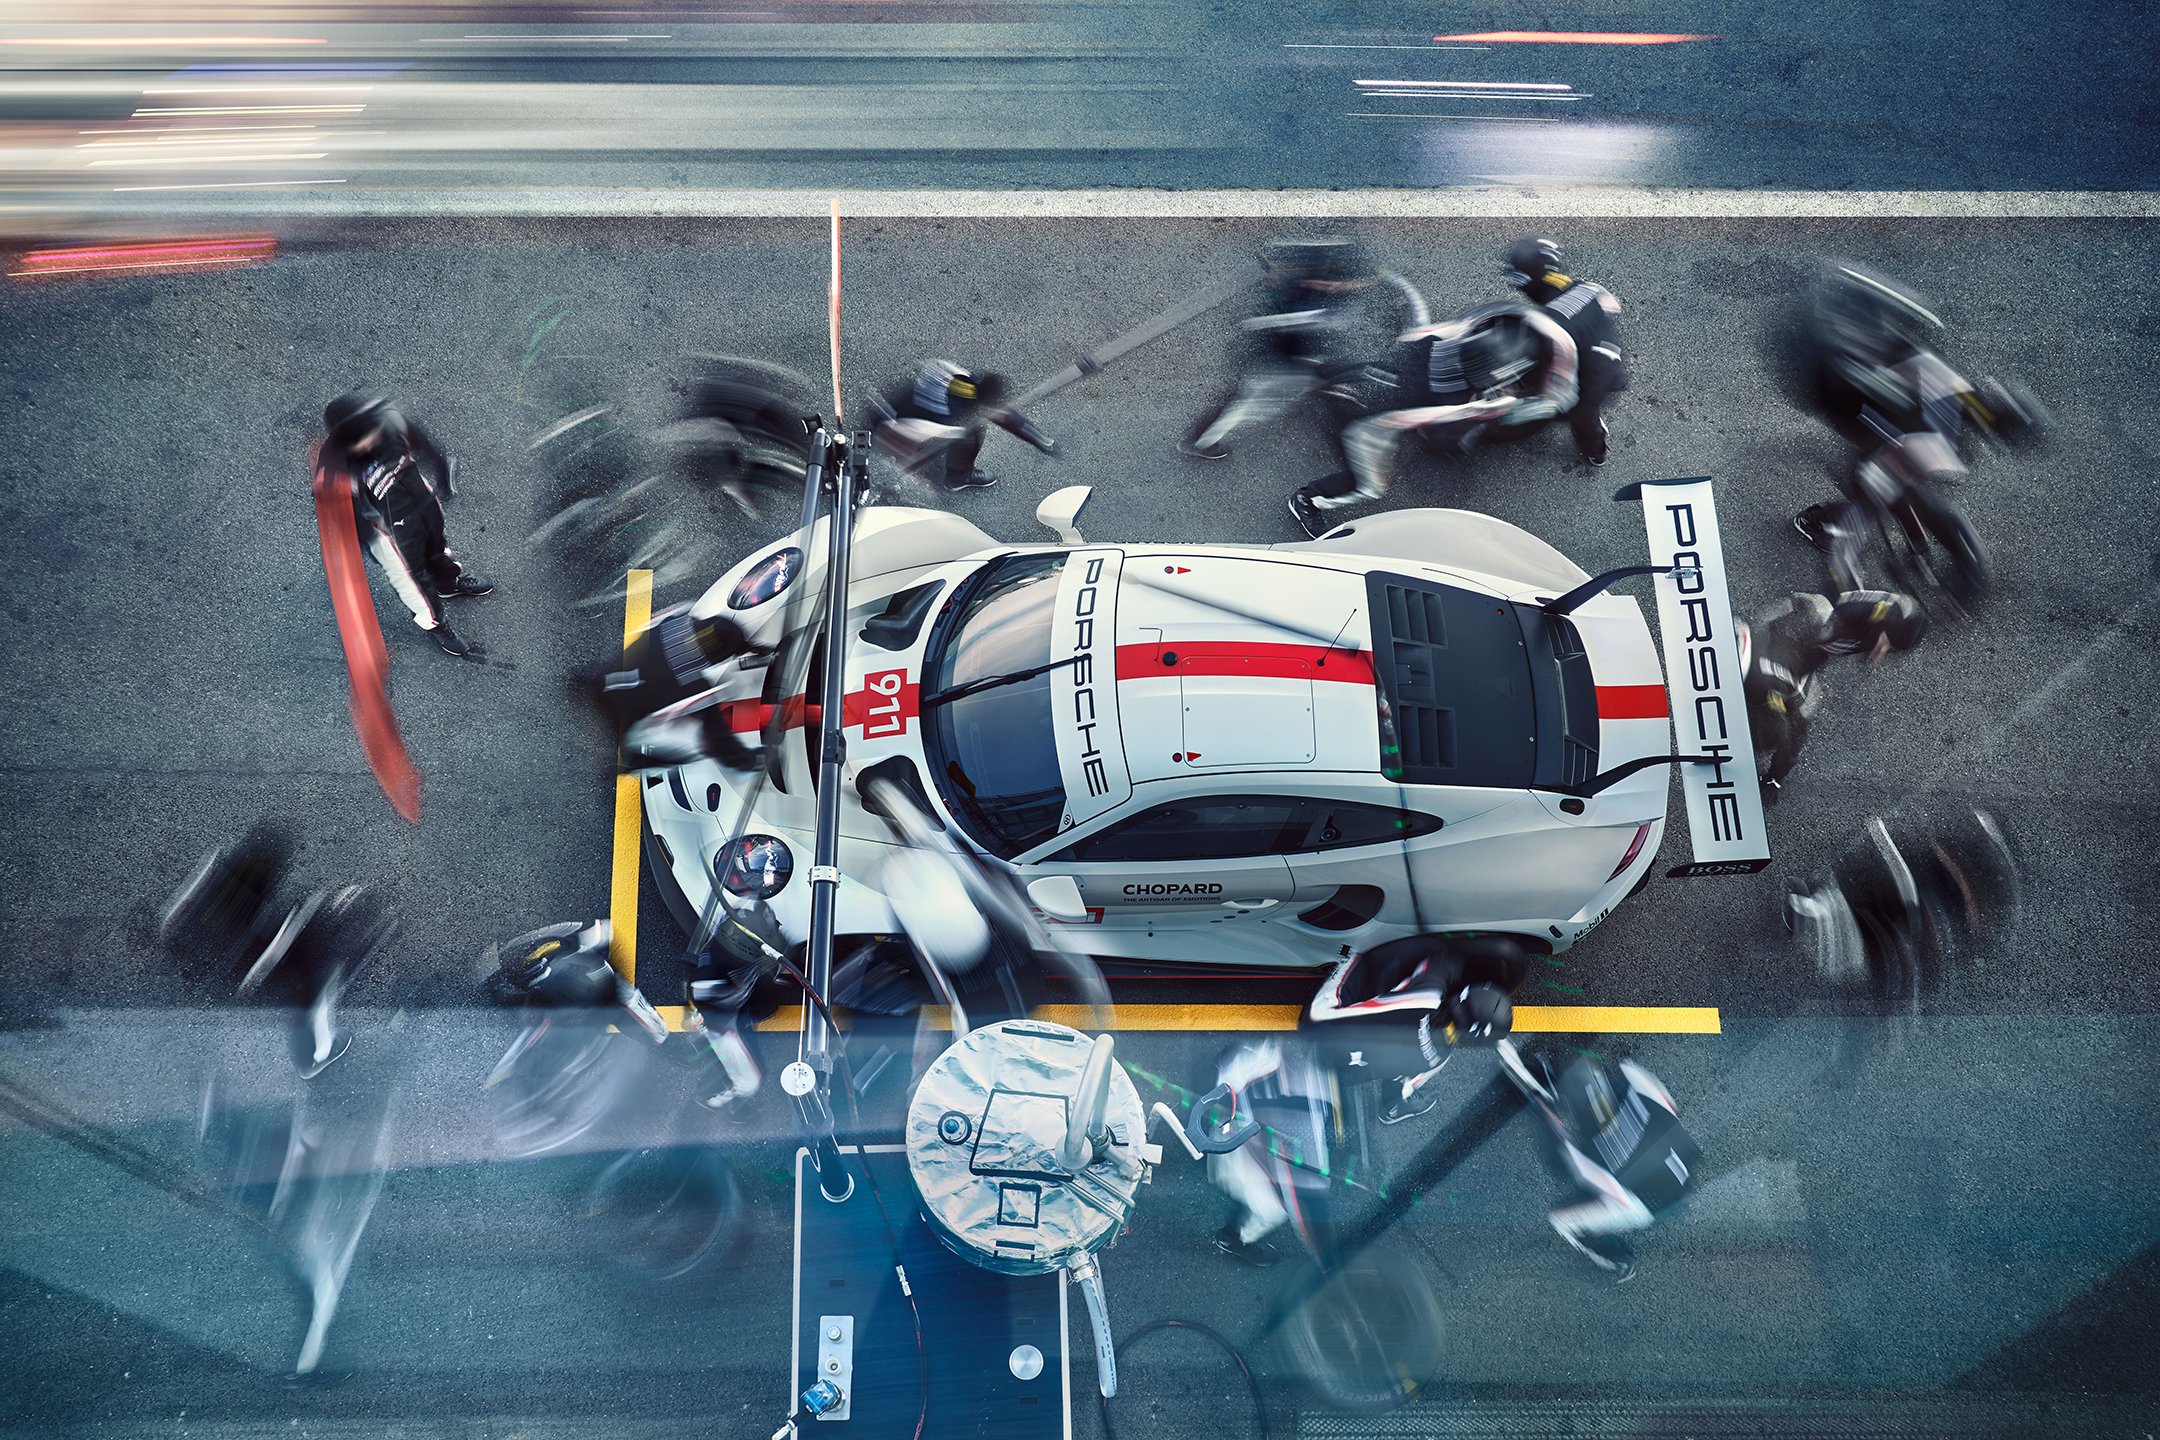 Porsche 911 RSR-19 - 2019 - top view - pit lane - team work